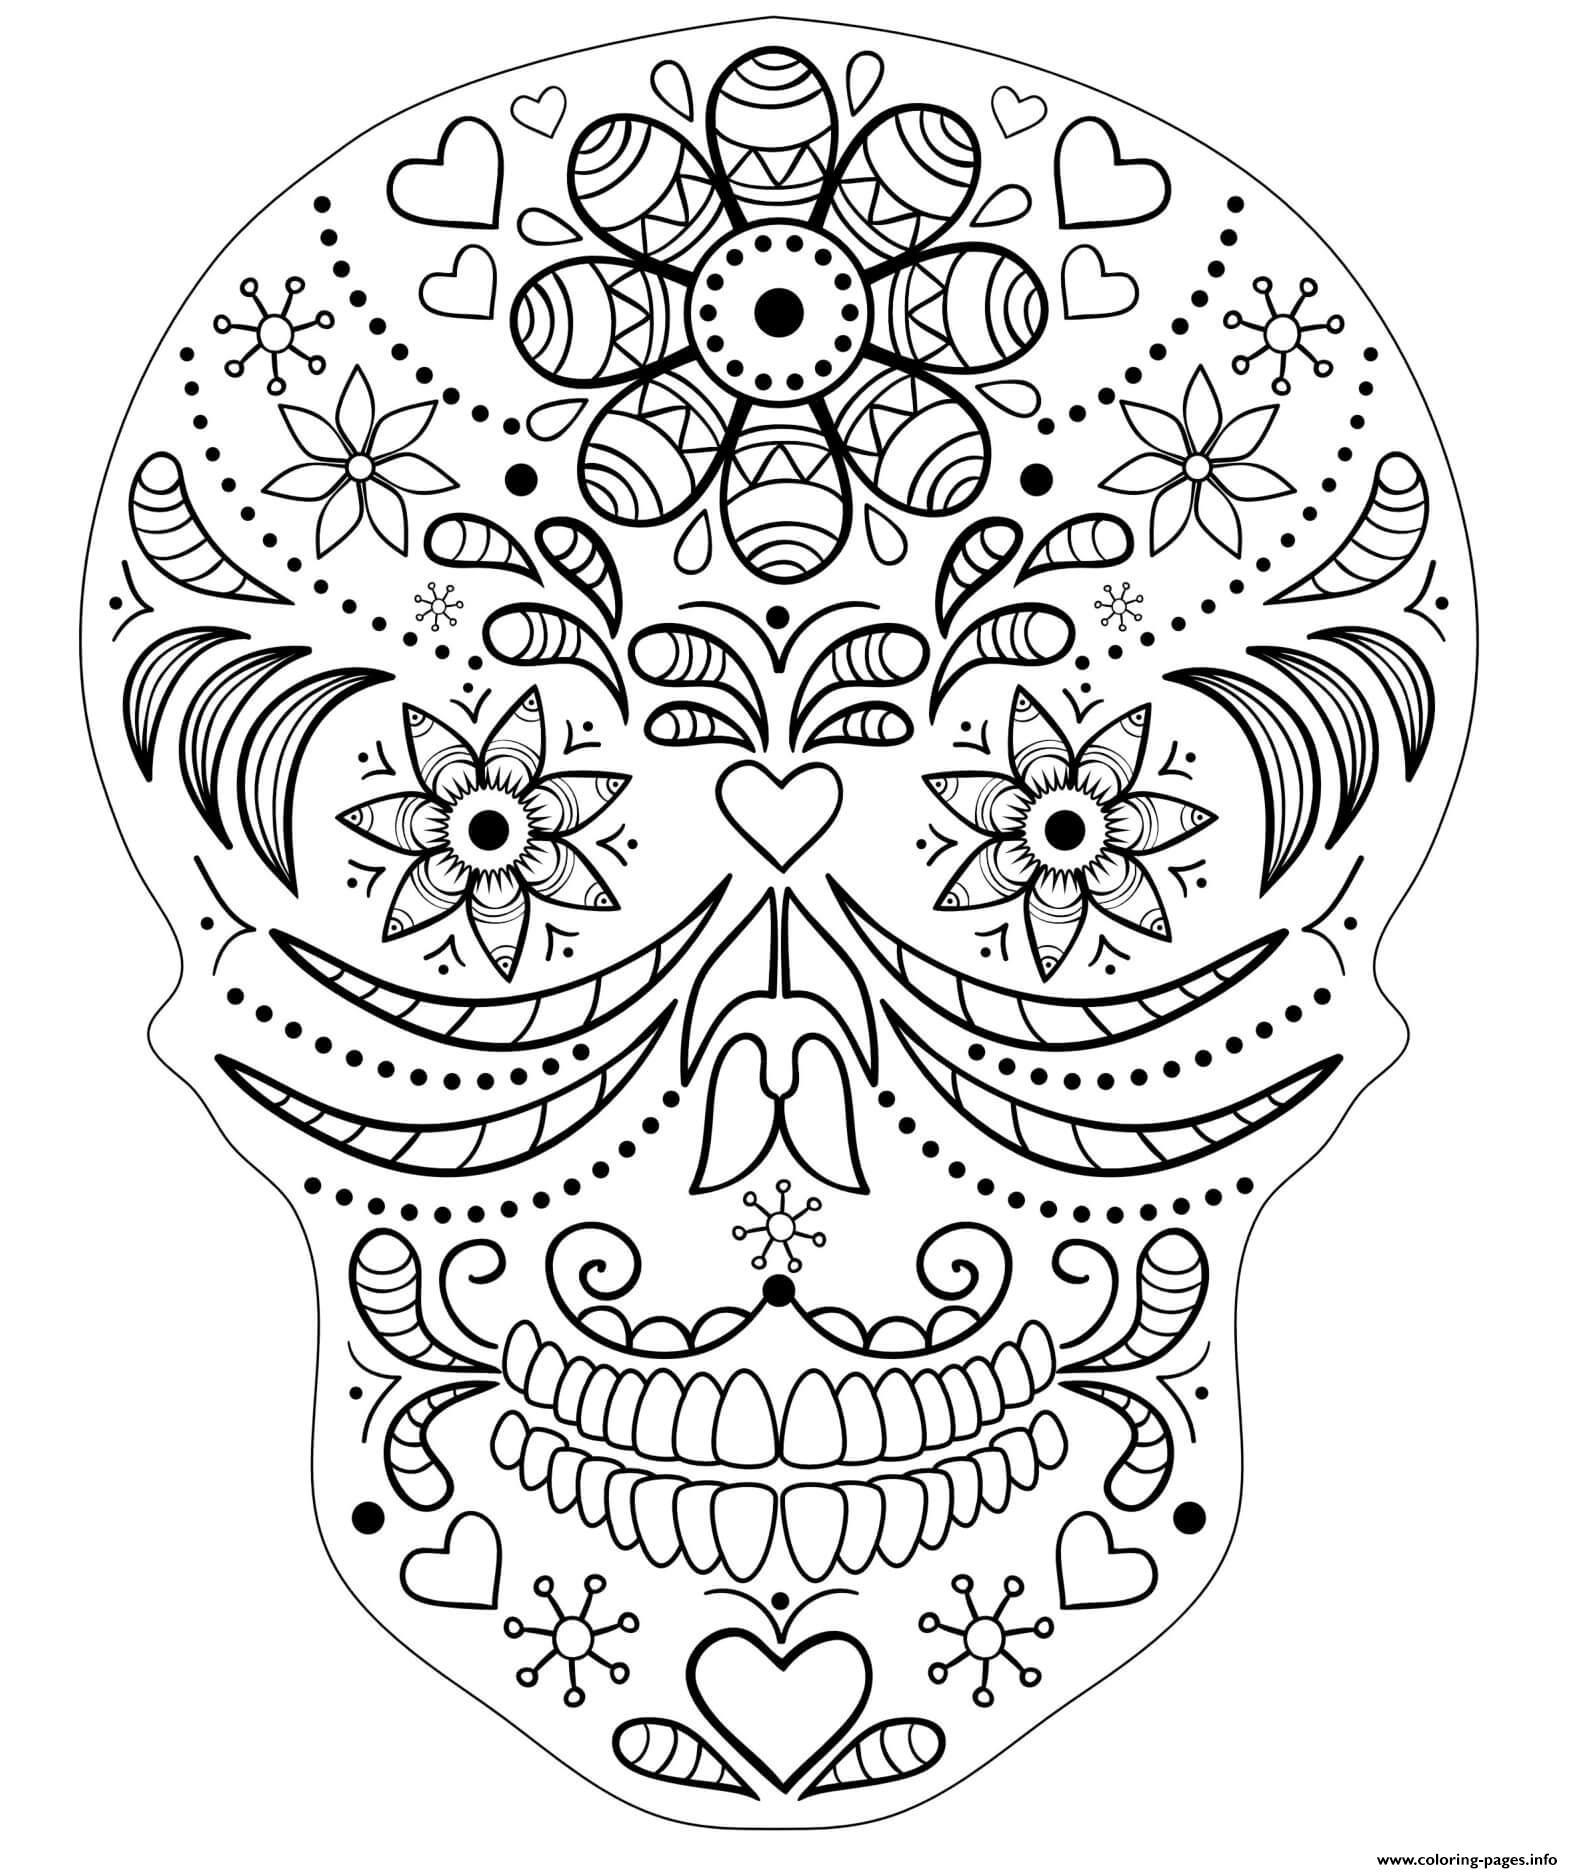 coloring star wars sugar skull storm trooper coloring pages printable coloring home star coloring wars sugar skull